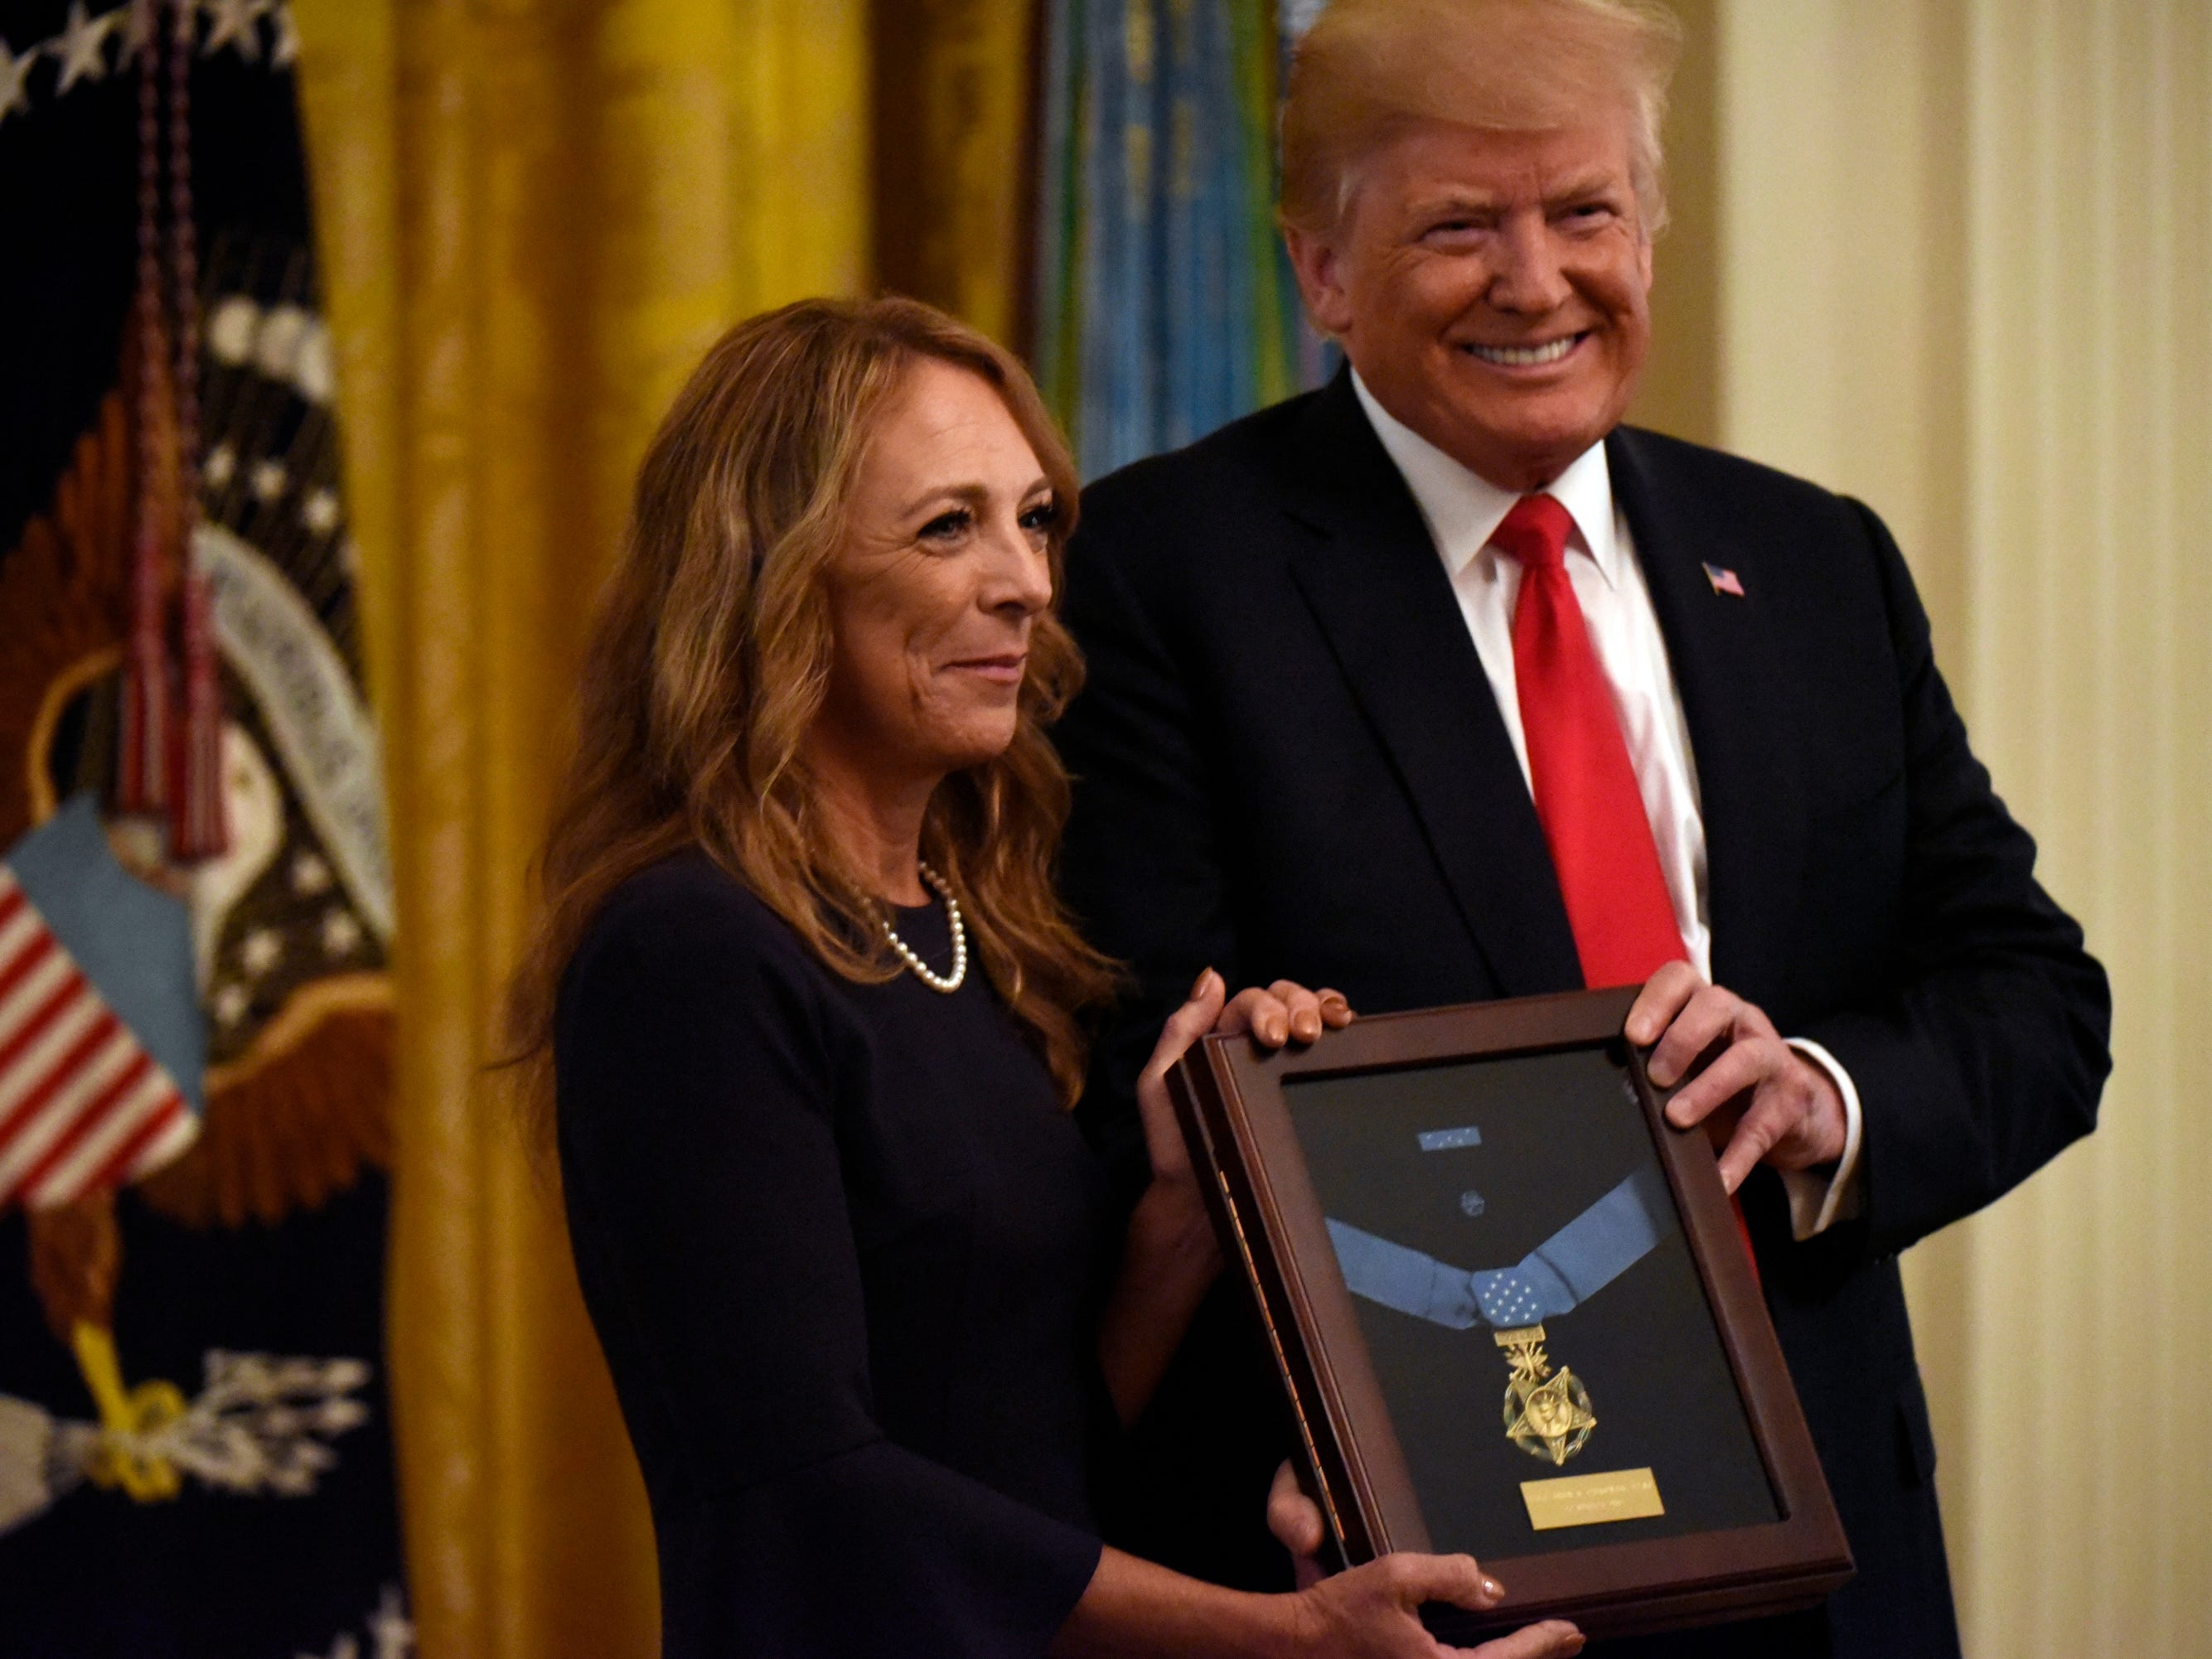 President Donald J. Trump awards Sergeant John A. Chapman the posthumous Medal of Honor on August 22, 2018 in the East Room at the White House for his actions on March 4, 2002, on Takur Ghar mountain in Afghanistan. Chapman's aircraft was hit by a rocket-propelled grenade, ejecting one teammate rom the aircraft, and crippling the helicopter after it crashed in the valley below. Chapman and the remaining joint special operations team members voluntarily returned to the snow-capped mountain, into known enemy stronghold, in an attempt to rescue their stranded teammate. Sergeant Chapman's spouse, Valerie Nessel, and family joined the President at the White House to commemorate his example of selfless service and sacrifice on Aug 22, 2018.